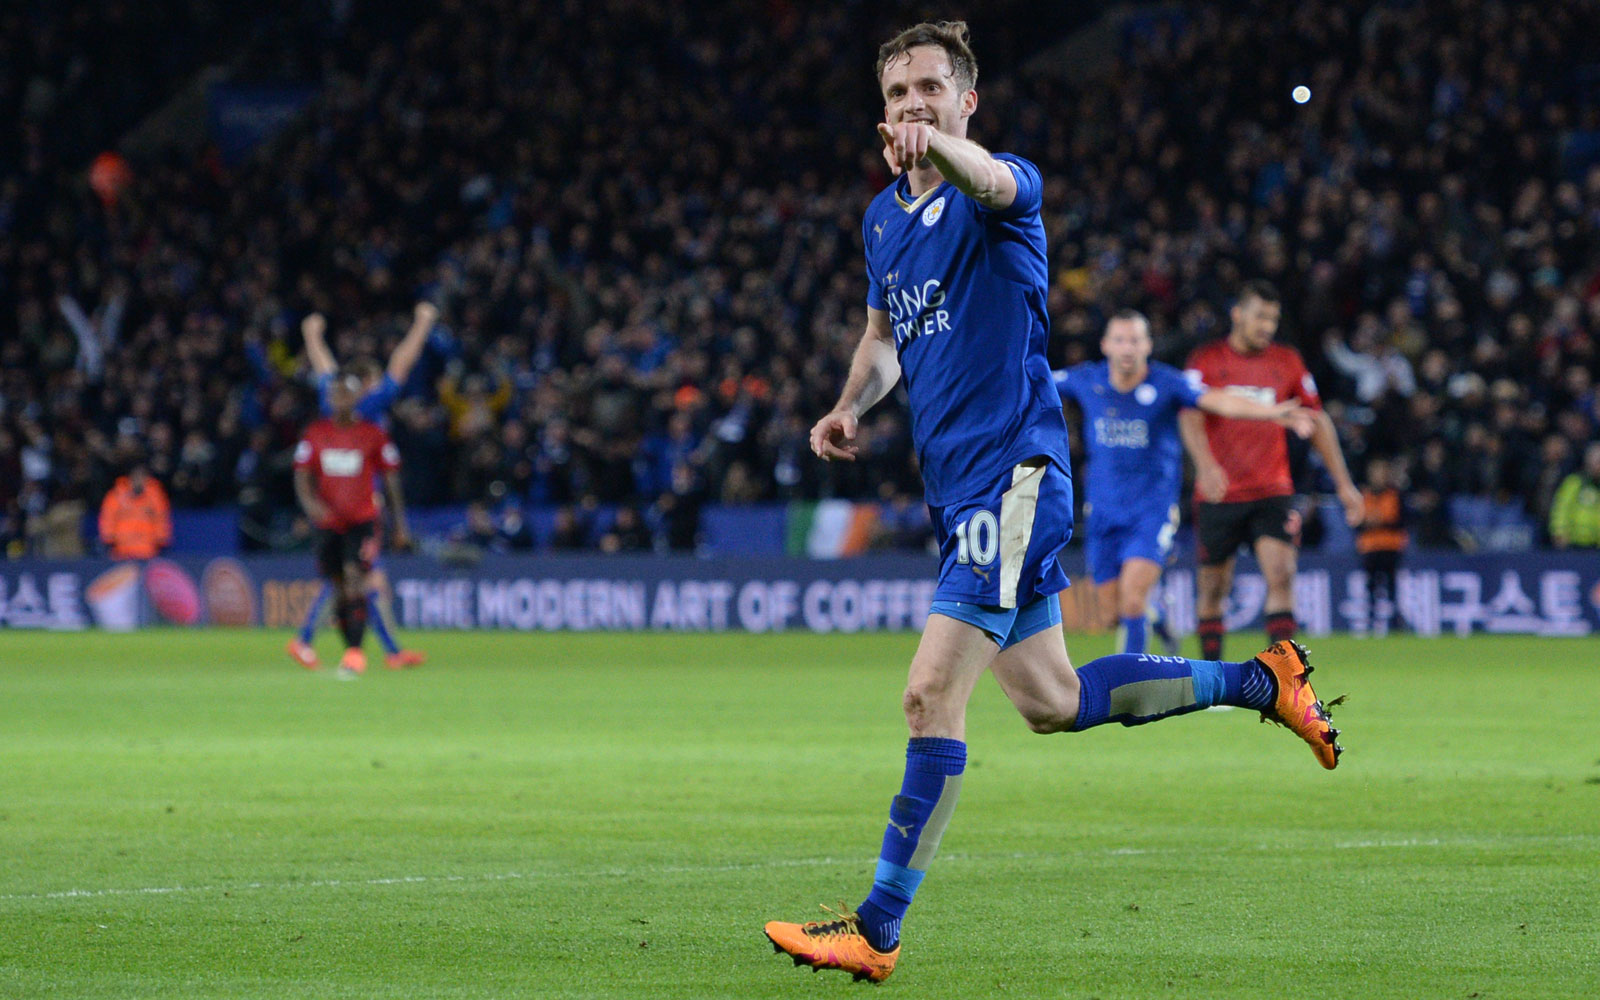 Not that it was ever remotely in doubt, but Leicester ensured safety from relegation with a 2-2 home draw vs. West Brom.